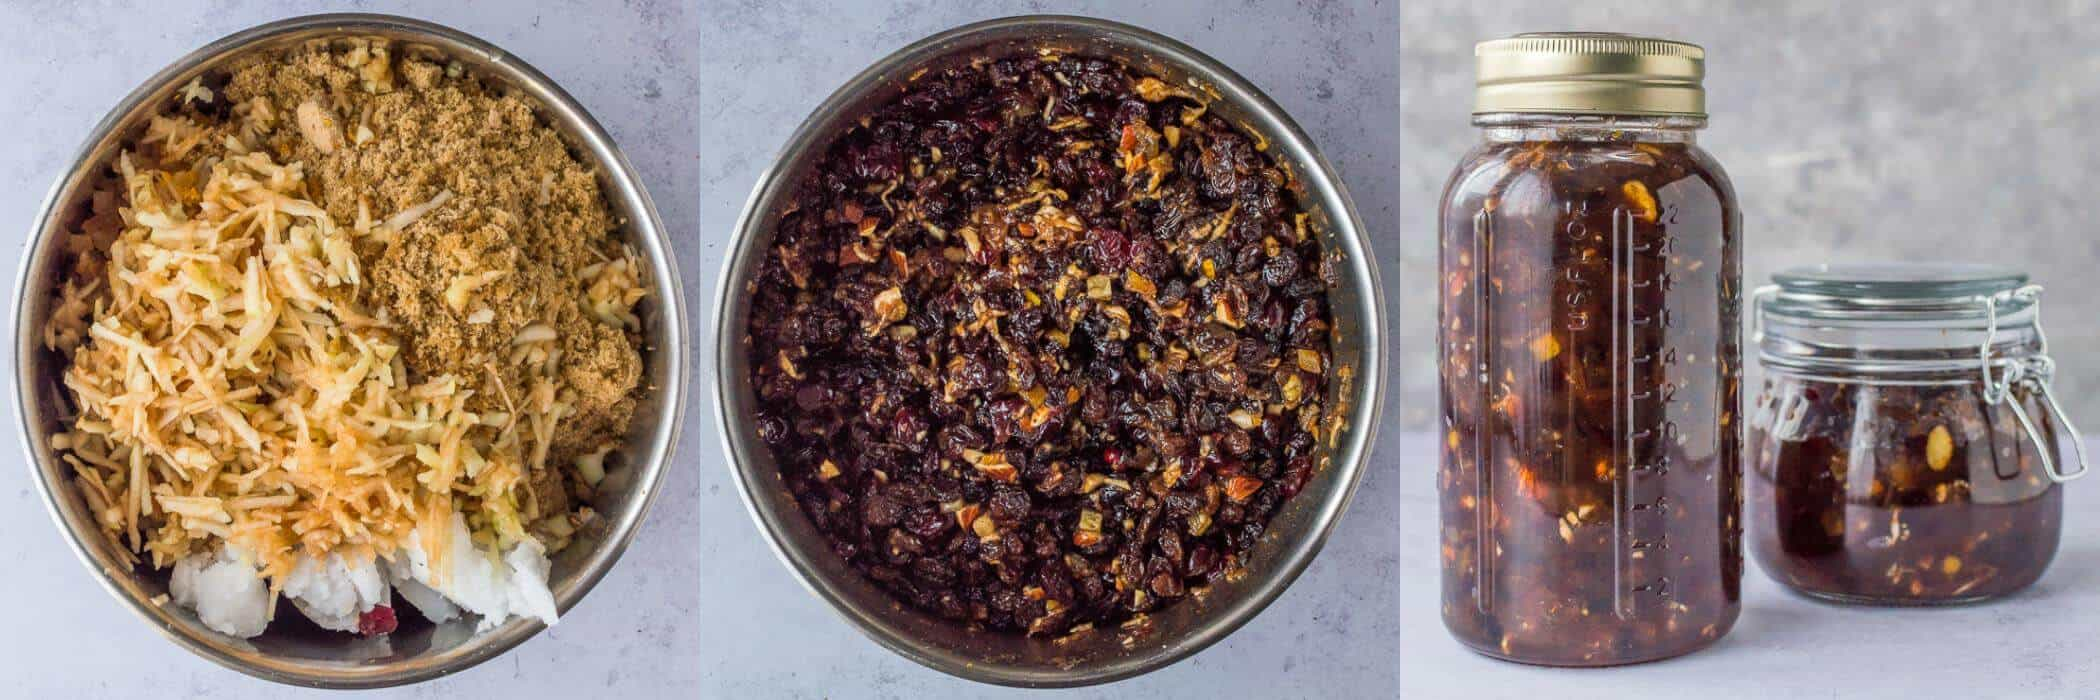 vegan mincemeat steps